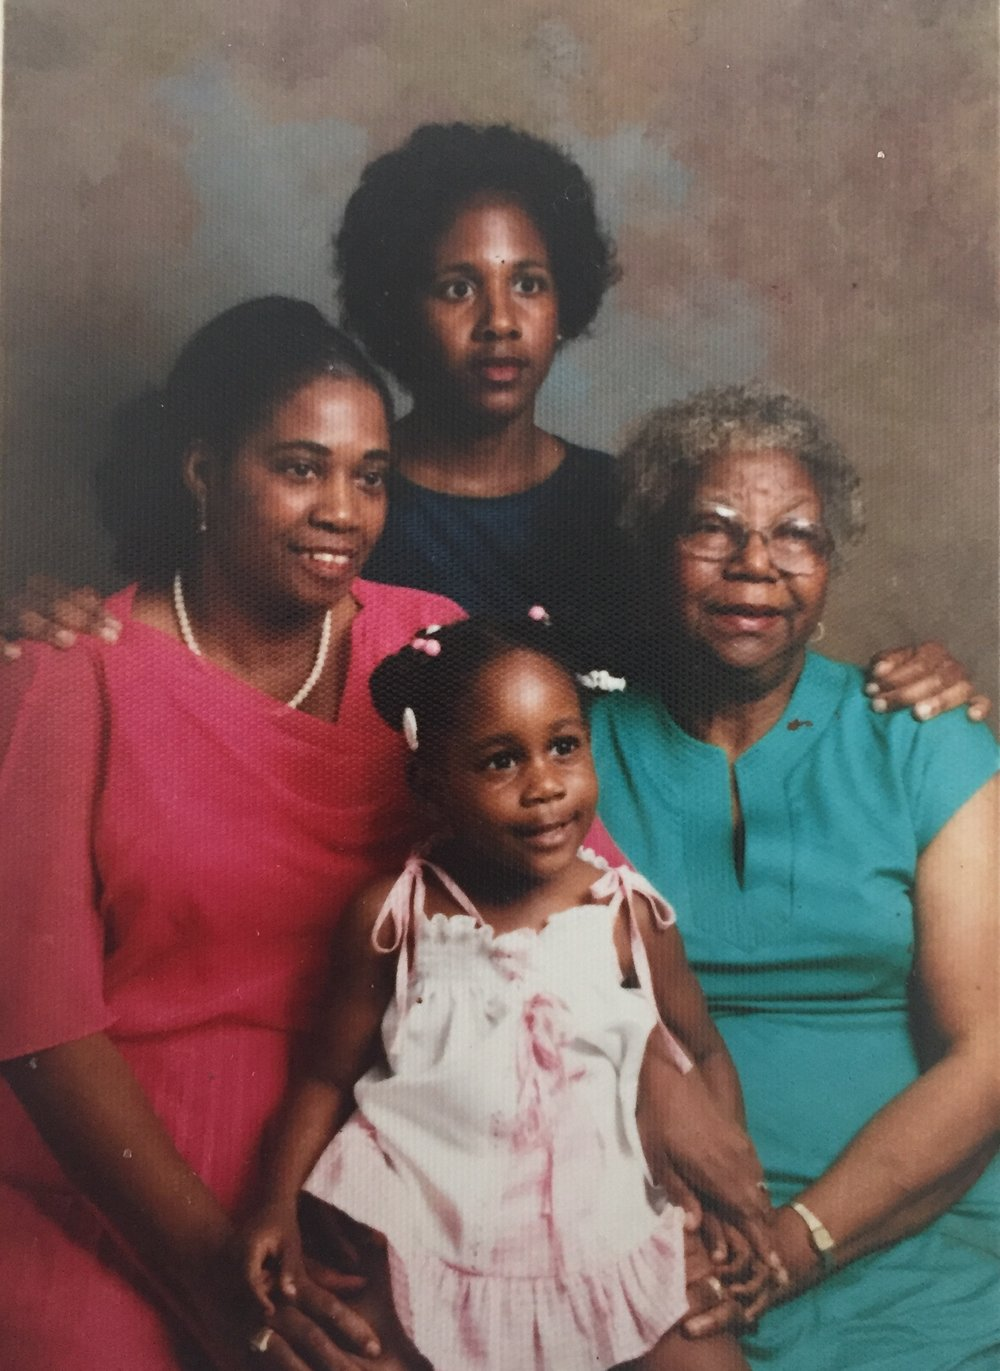 Four generations of Black Girl Magic. Me about aged 3? Pictured with my mother (top) My grandmother (left) and my great-grandmother (right)